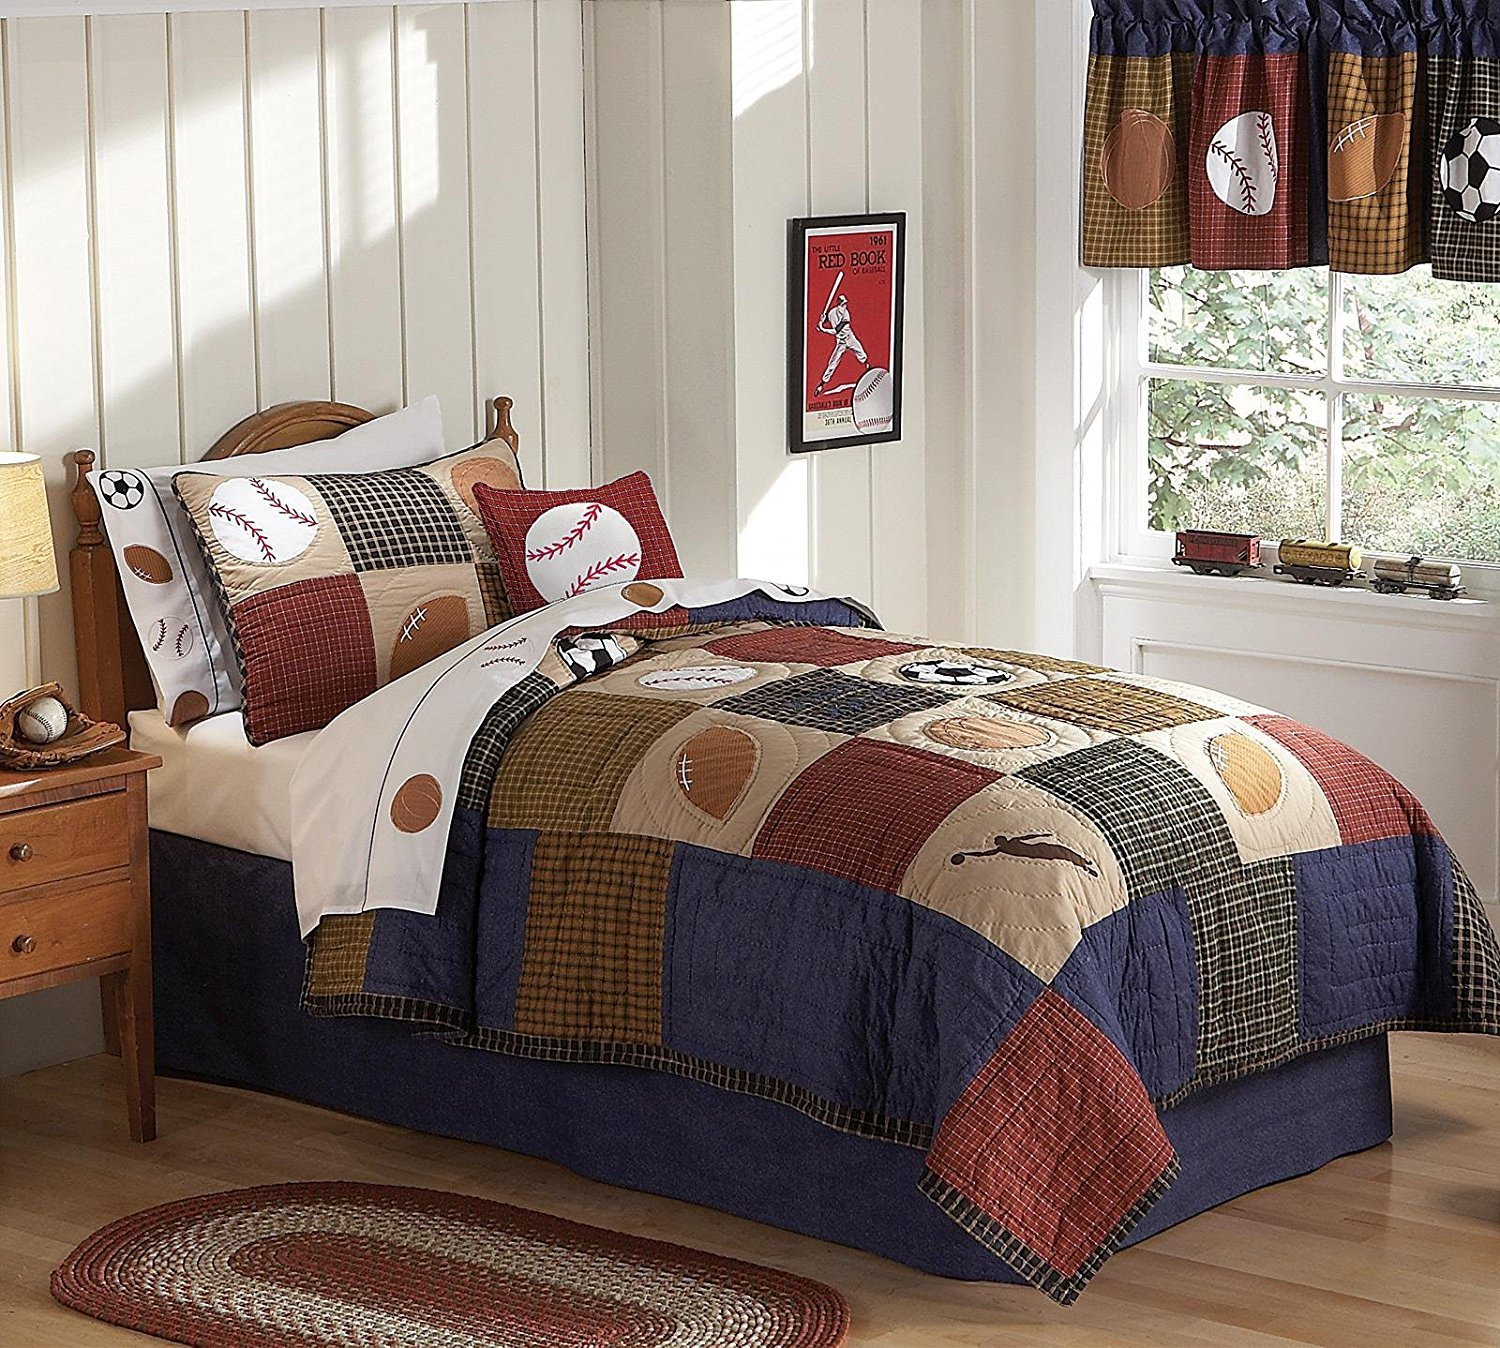 Laura Hart Kids QS6090FQ-2300 Classic Sports Quilt with 2 Shams, Full/Queen